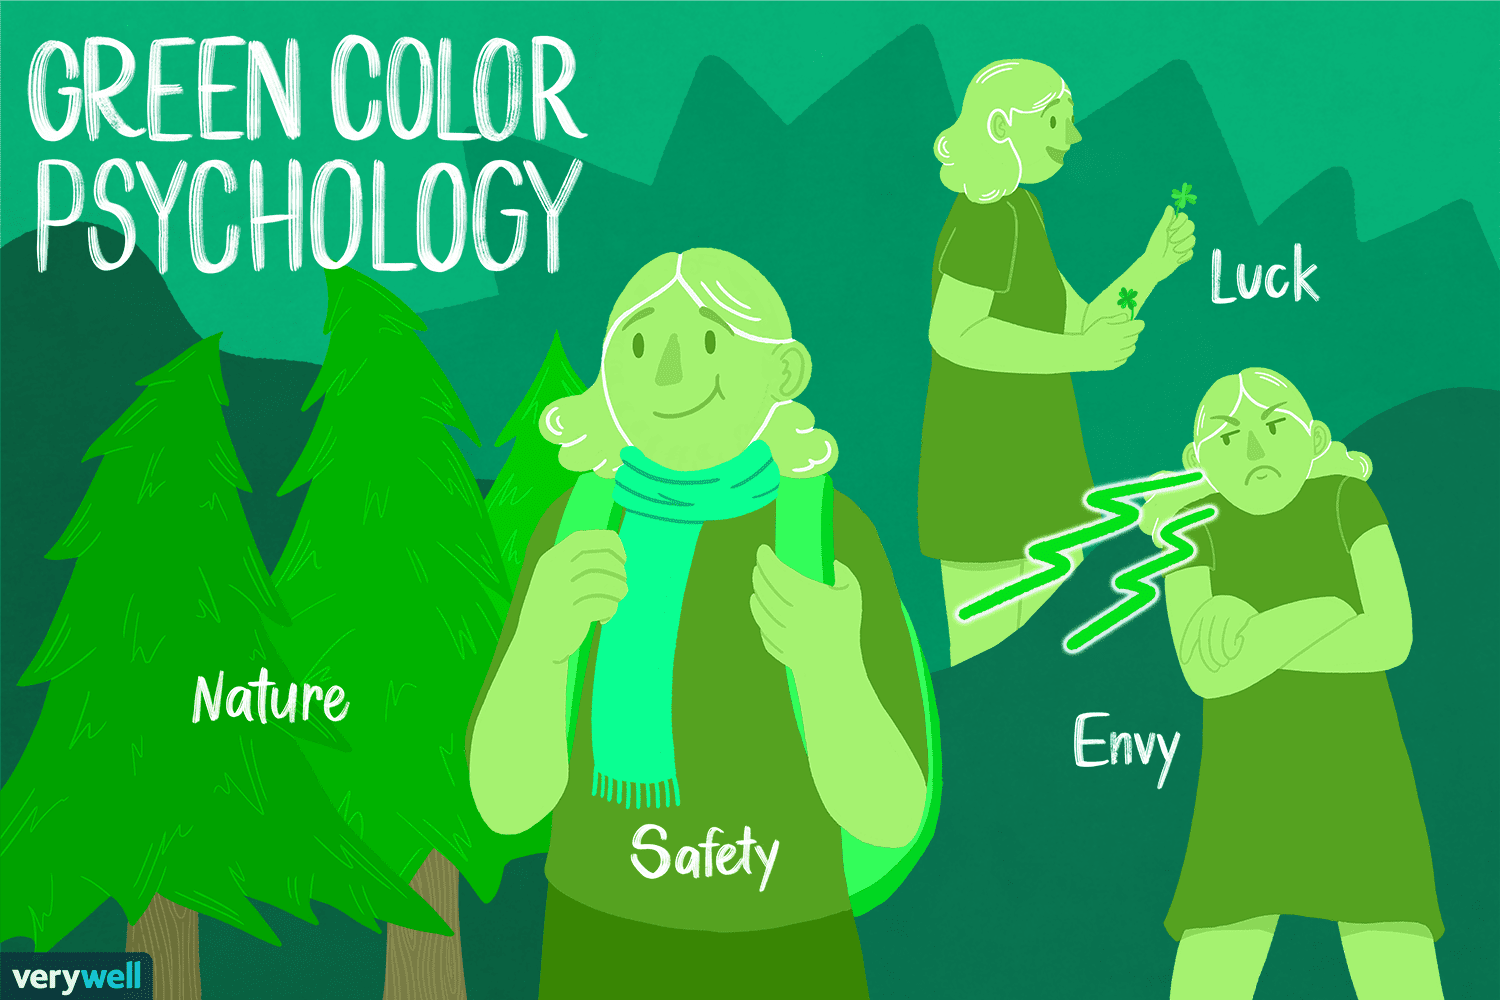 color psychology green FINAL 9525be717fdc4872ac8f2b7a2ef4134c